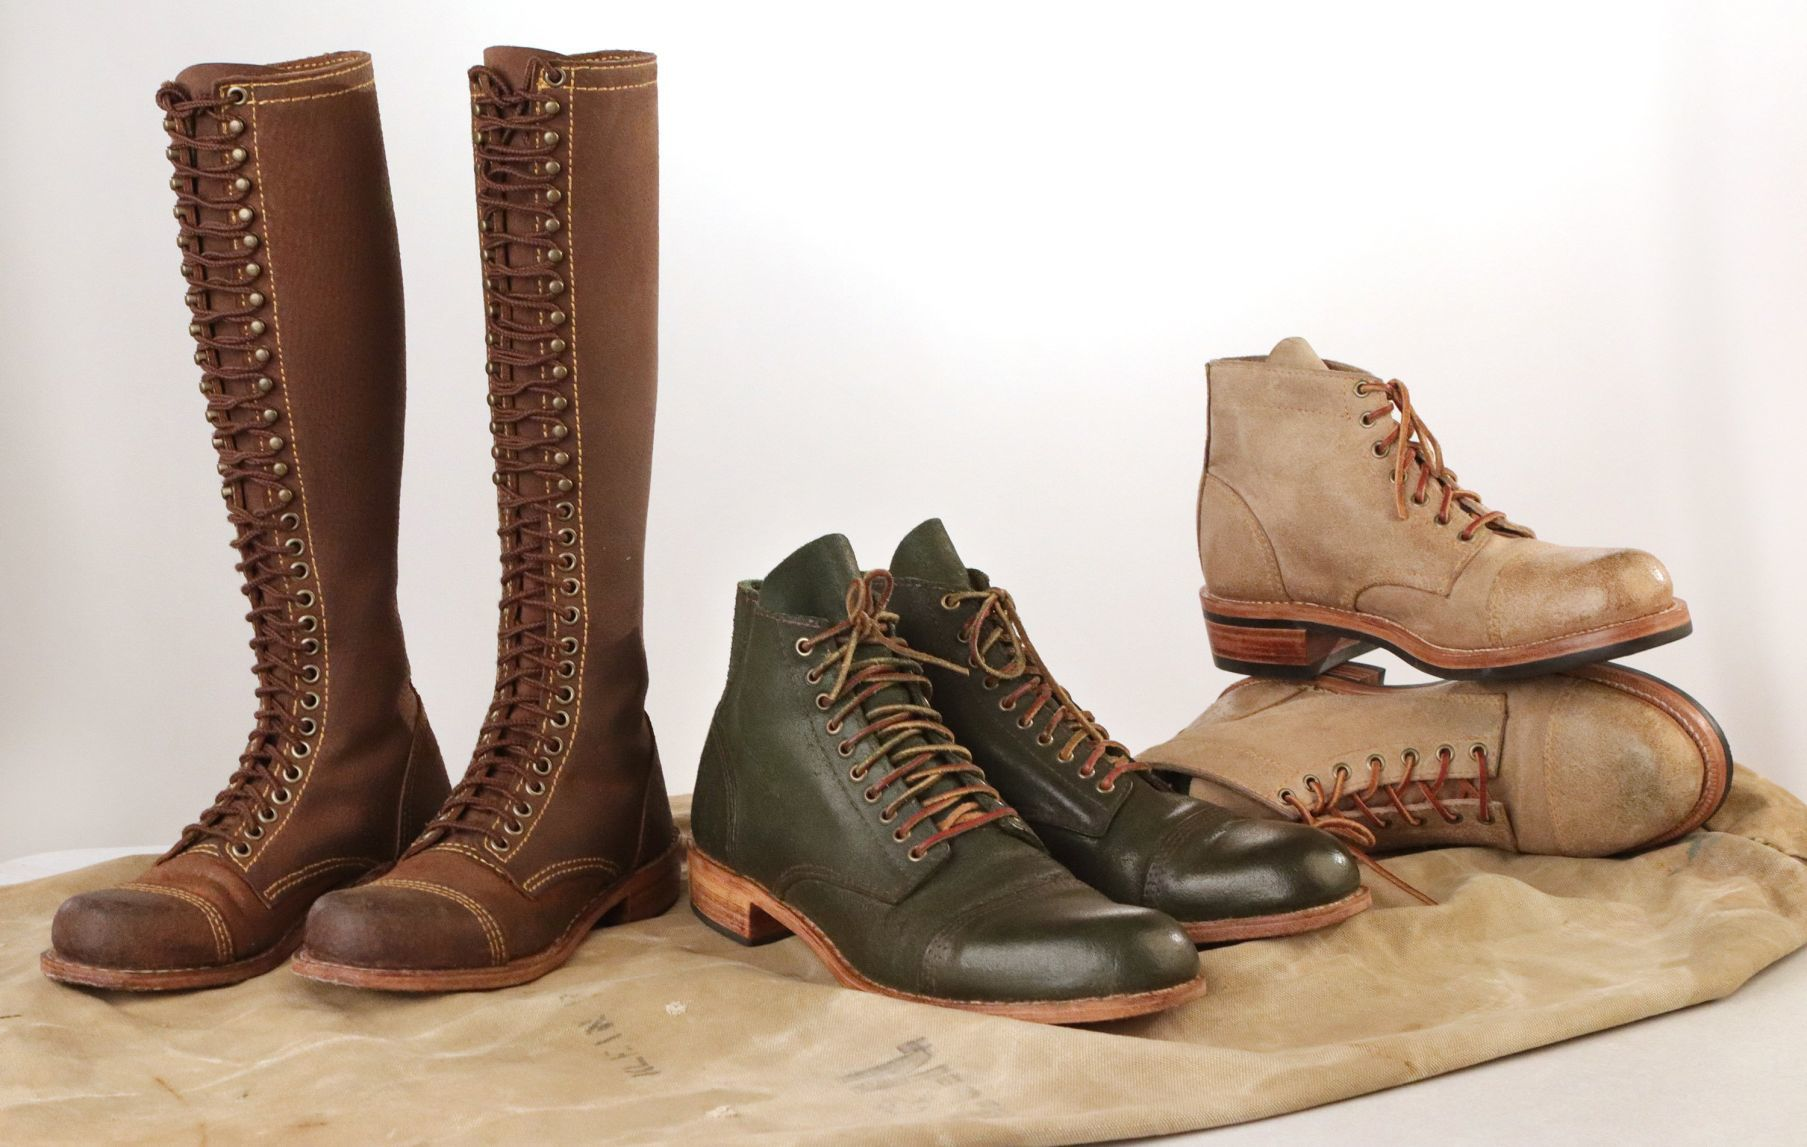 Made in St. Louis: St. Charles boot